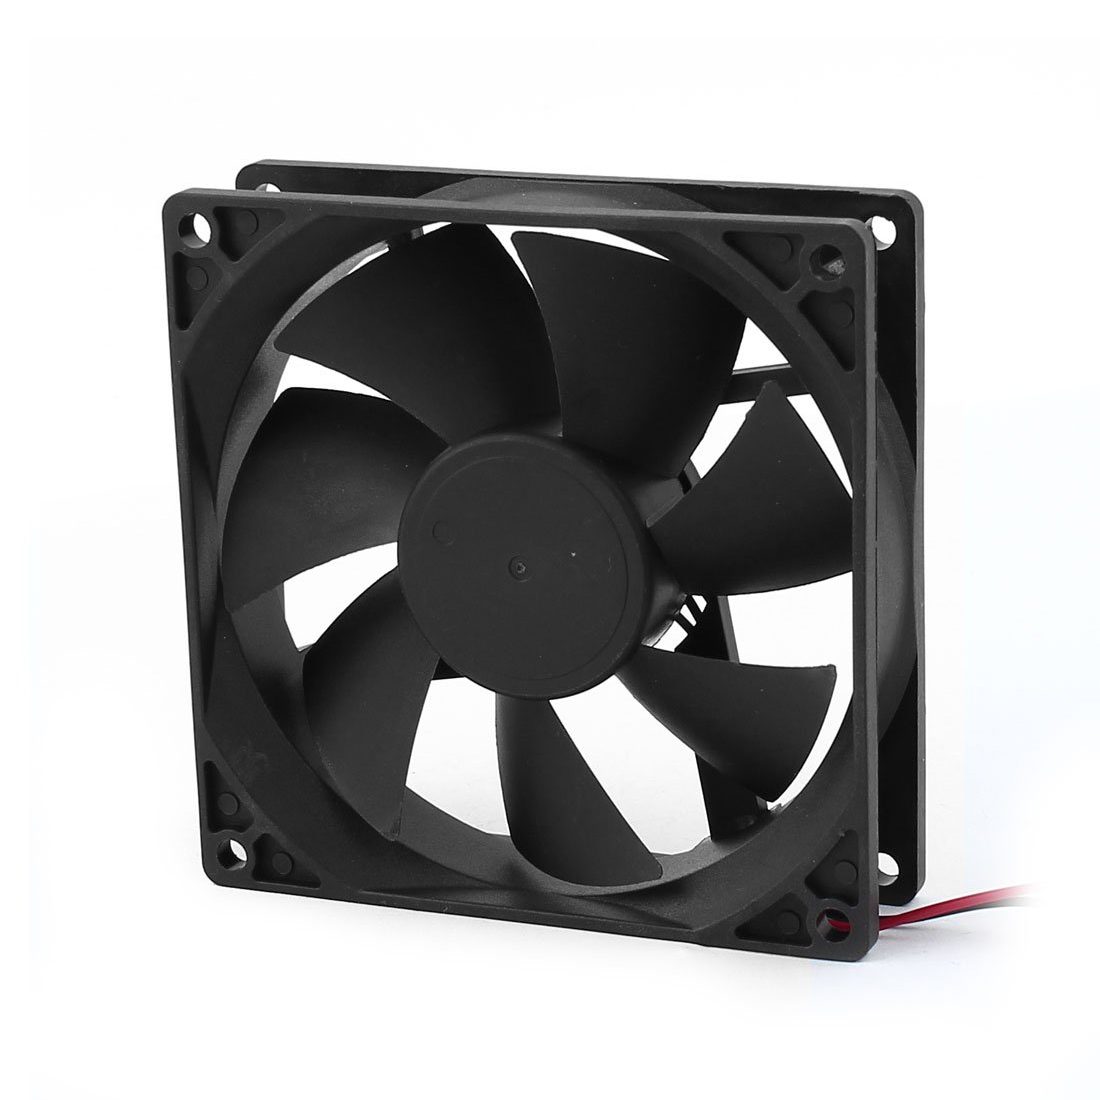 PROMOTION! 90mm x 25mm 9025 2pin 12V DC Brushless PC Case CPU Cooler Cooling Fan promotion 92mm x 25mm dc 12v 2pin 65 01cfm computer case cpu cooler cooling fan